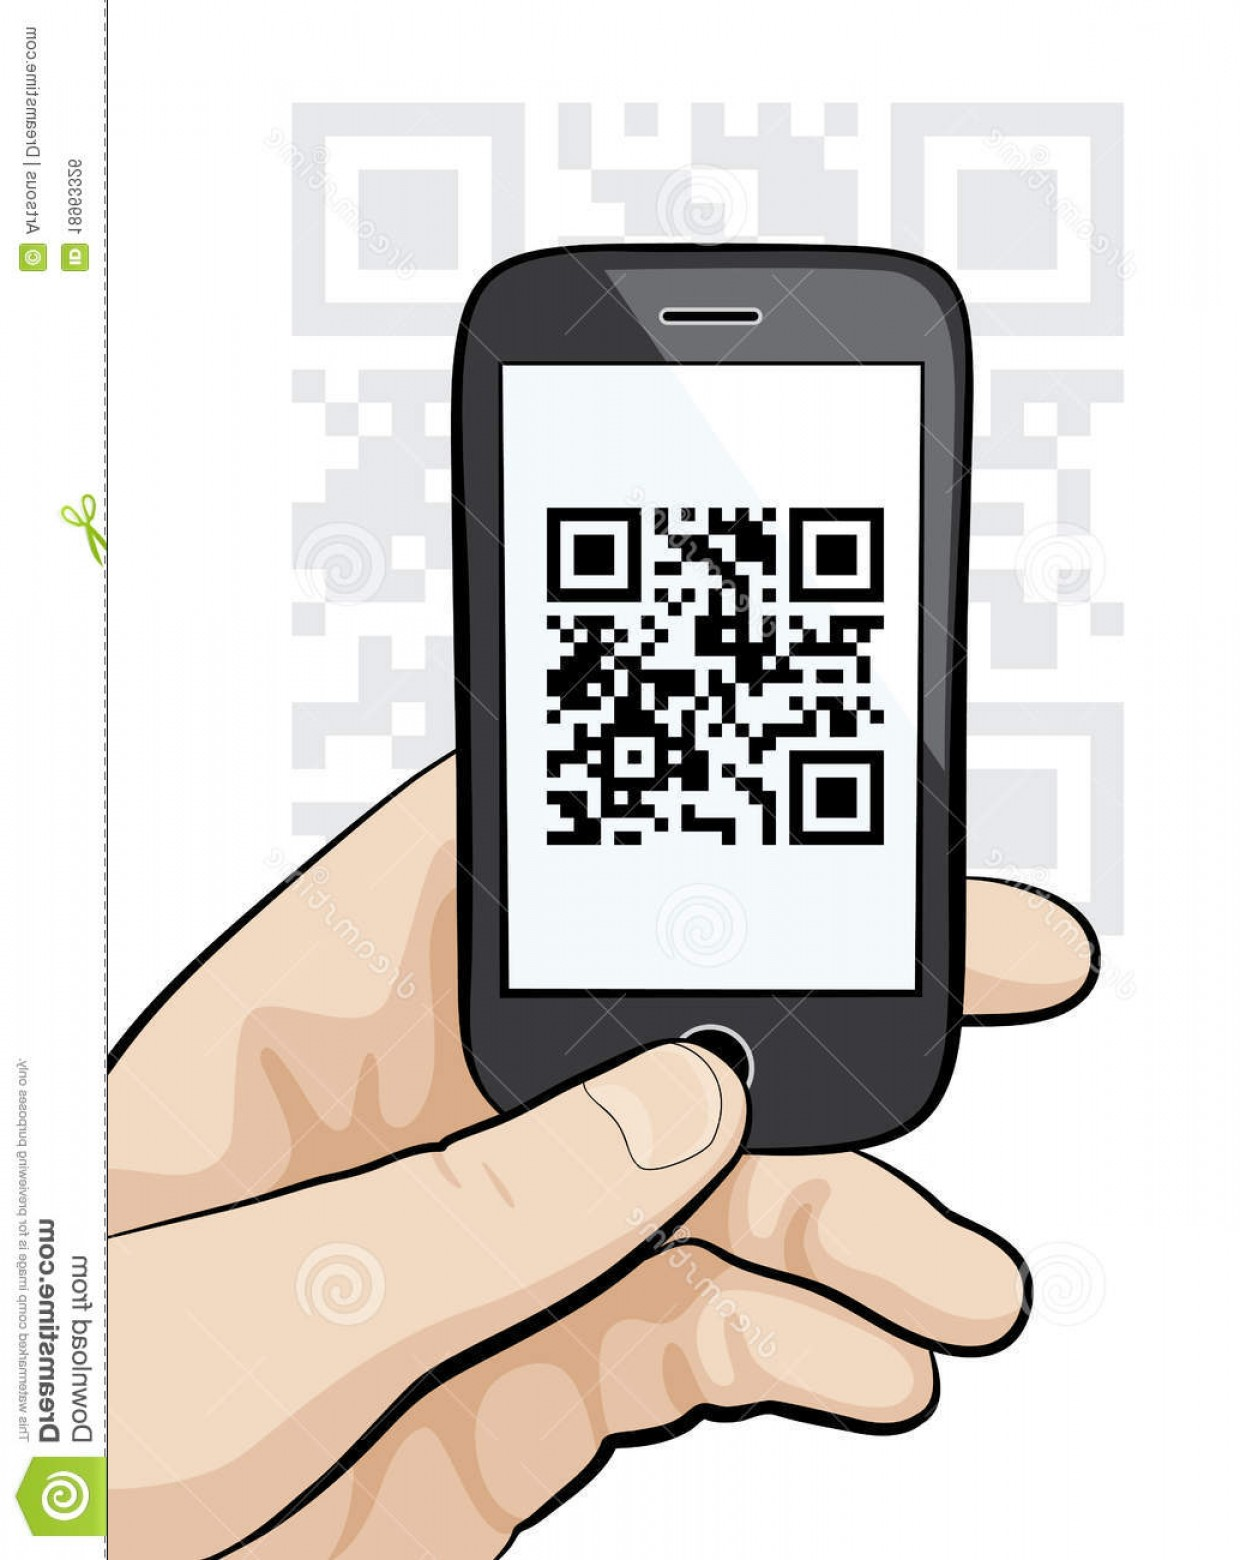 QR Mobile Phone Vector: Royalty Free Stock Image Mobile Phone Male Hand Scanning Qr Code Image